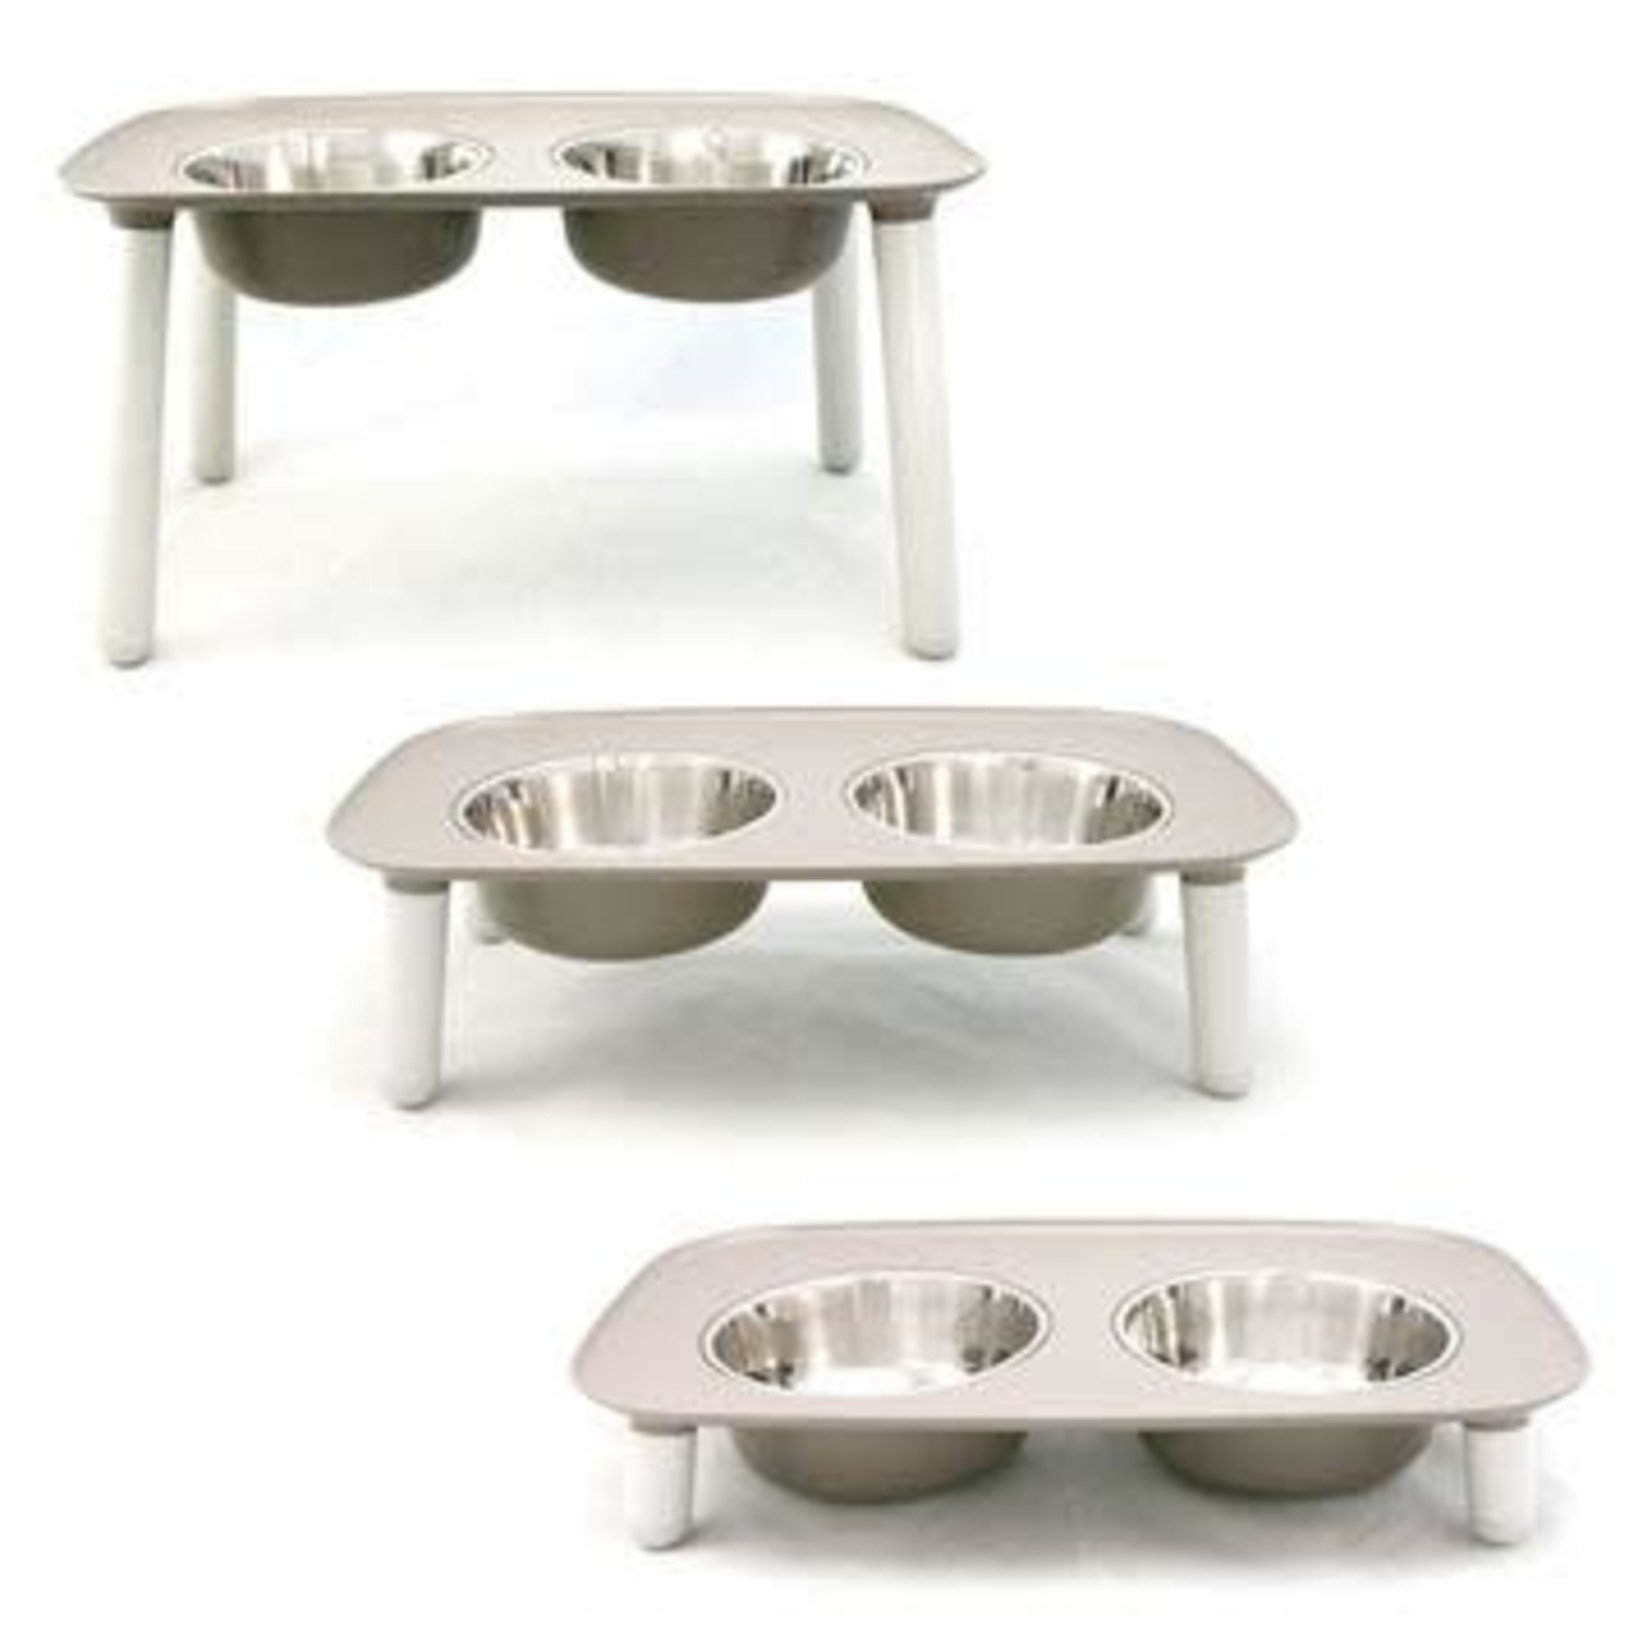 Messy Mutts Messy Mutts Dog Elevated Double Feeder Light Grey